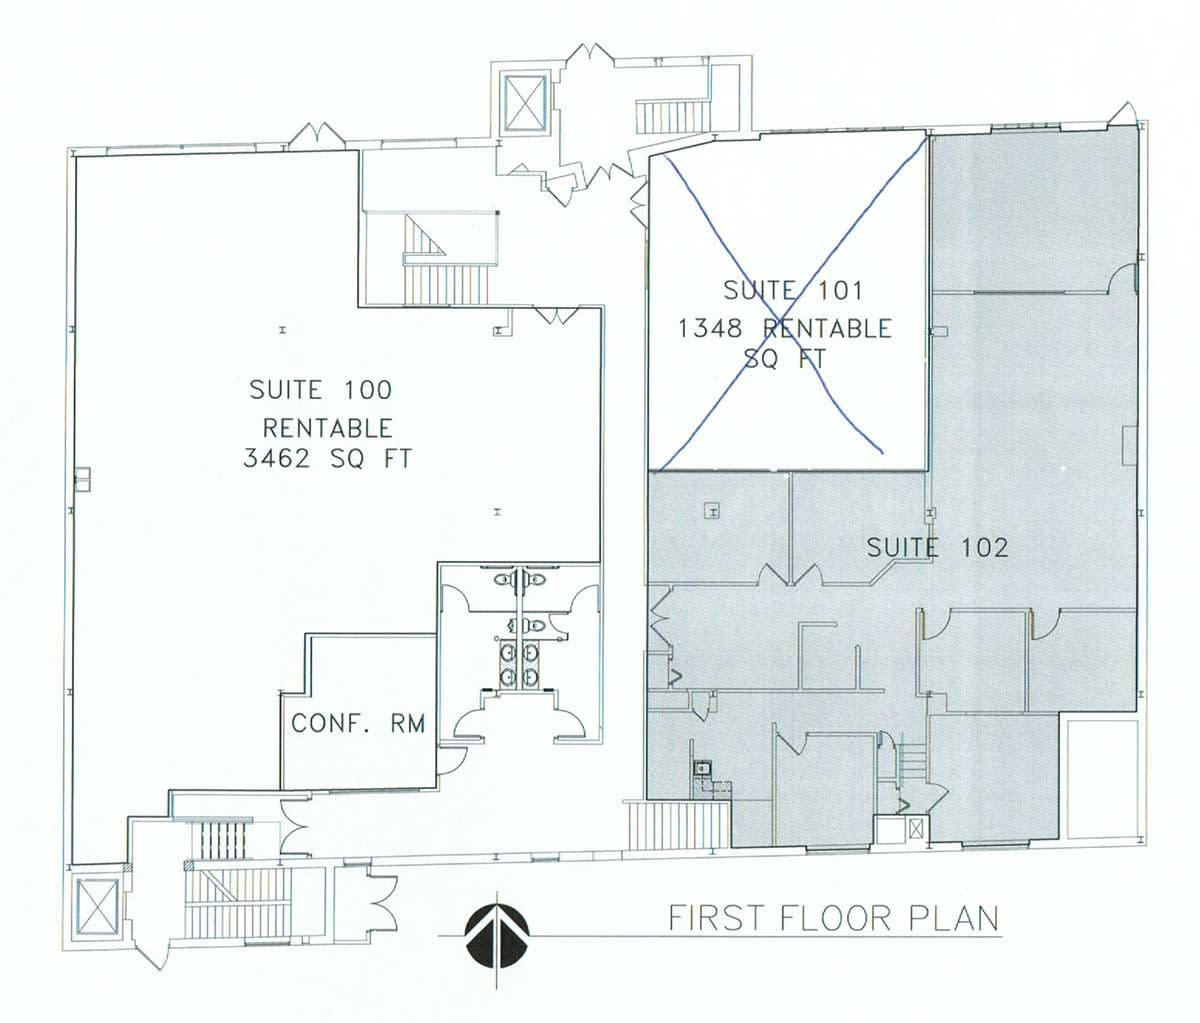 FirstFloorPlan